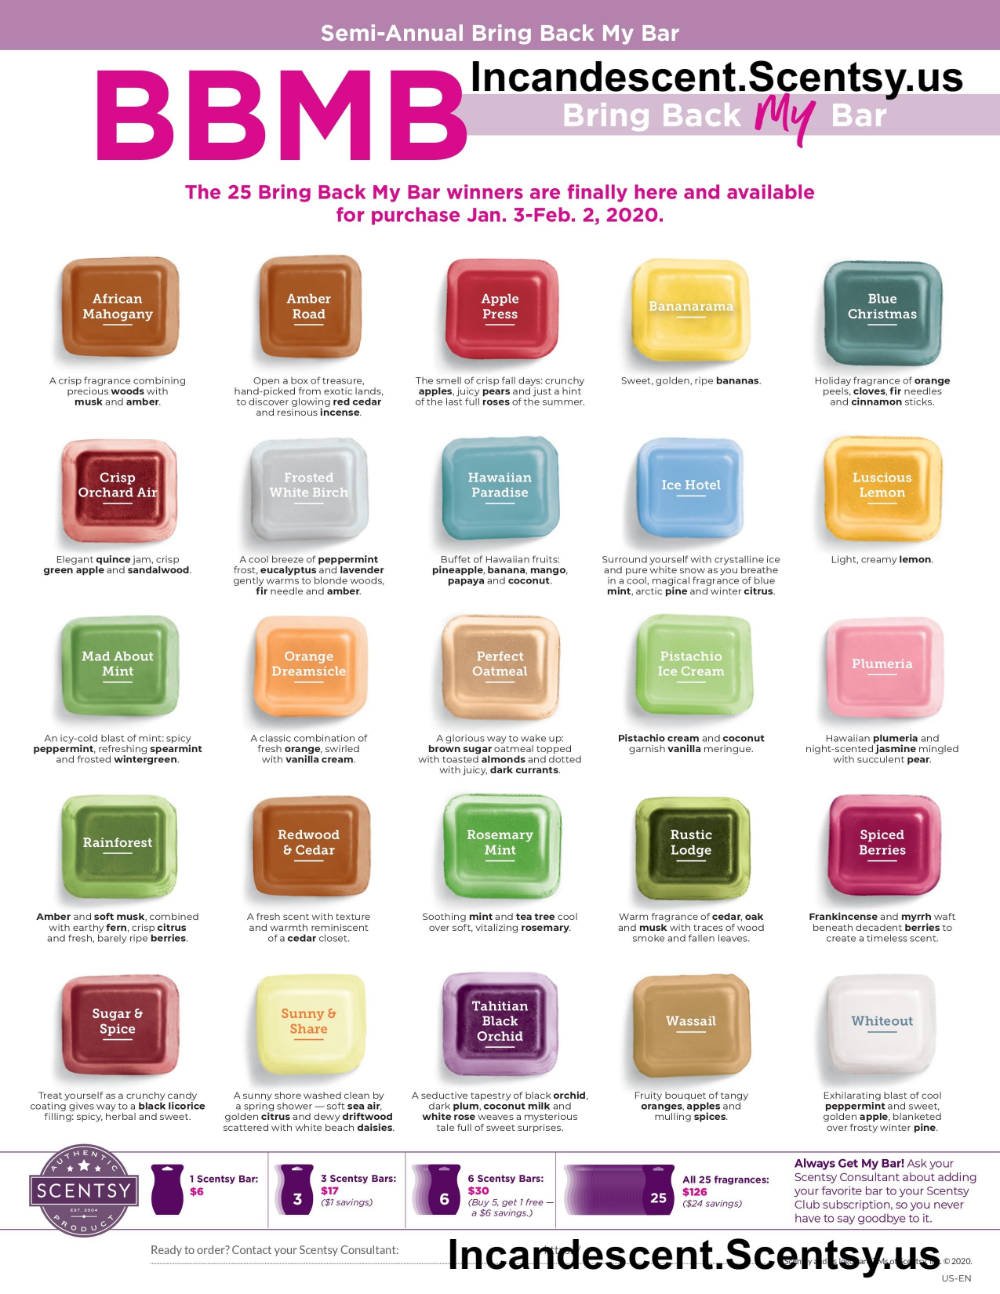 Pin On Scentsy Bring Back My Bar January 2020